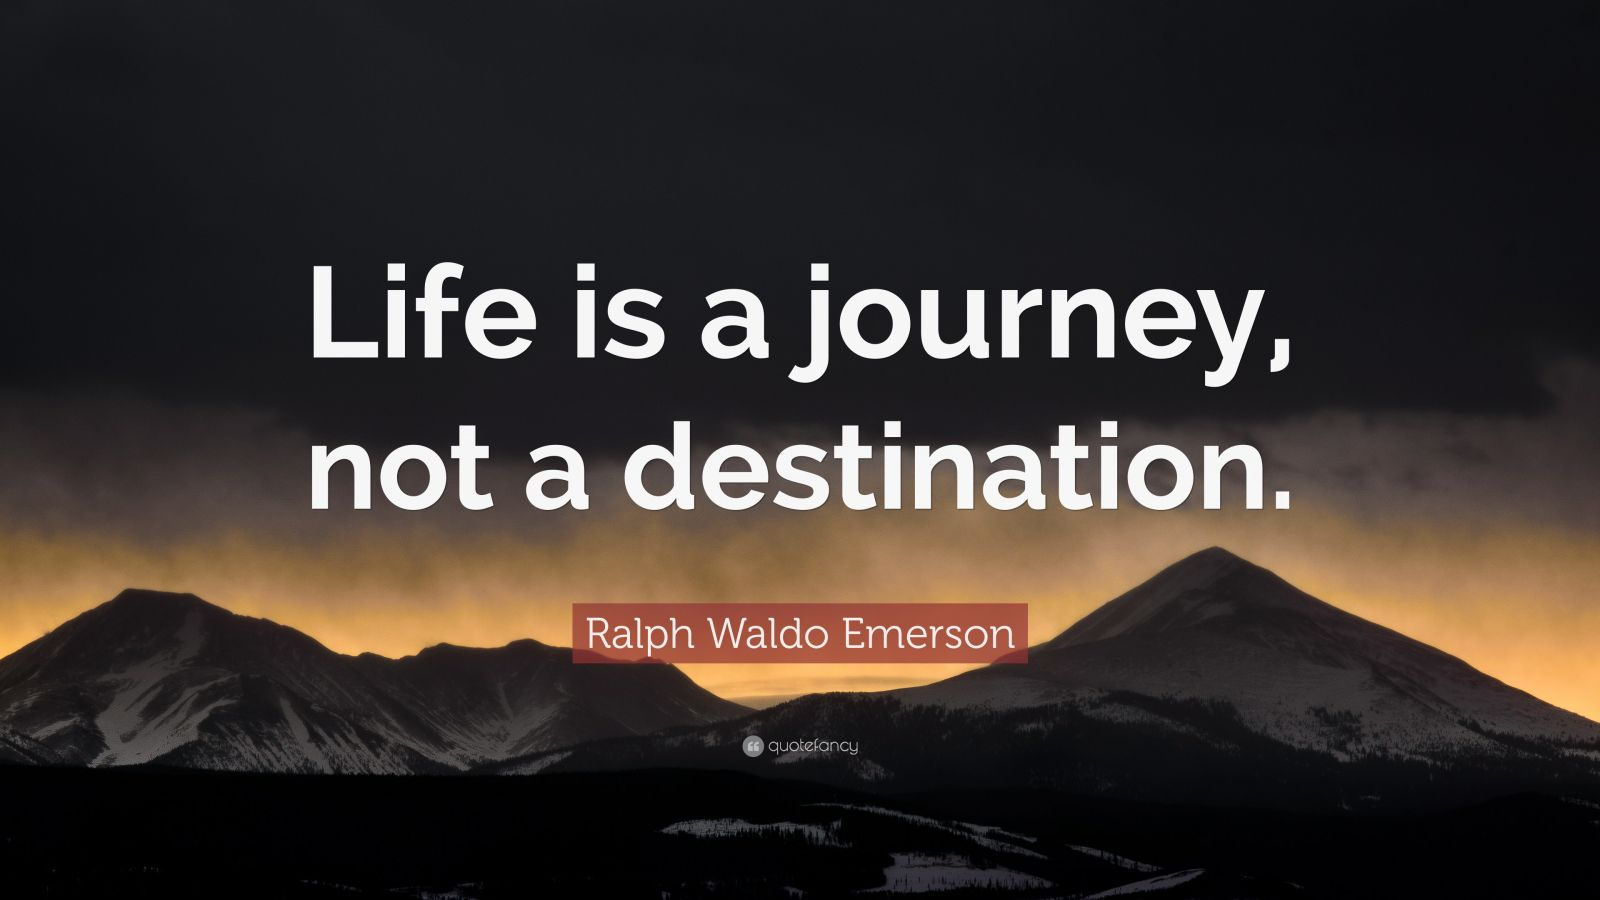 life a journey